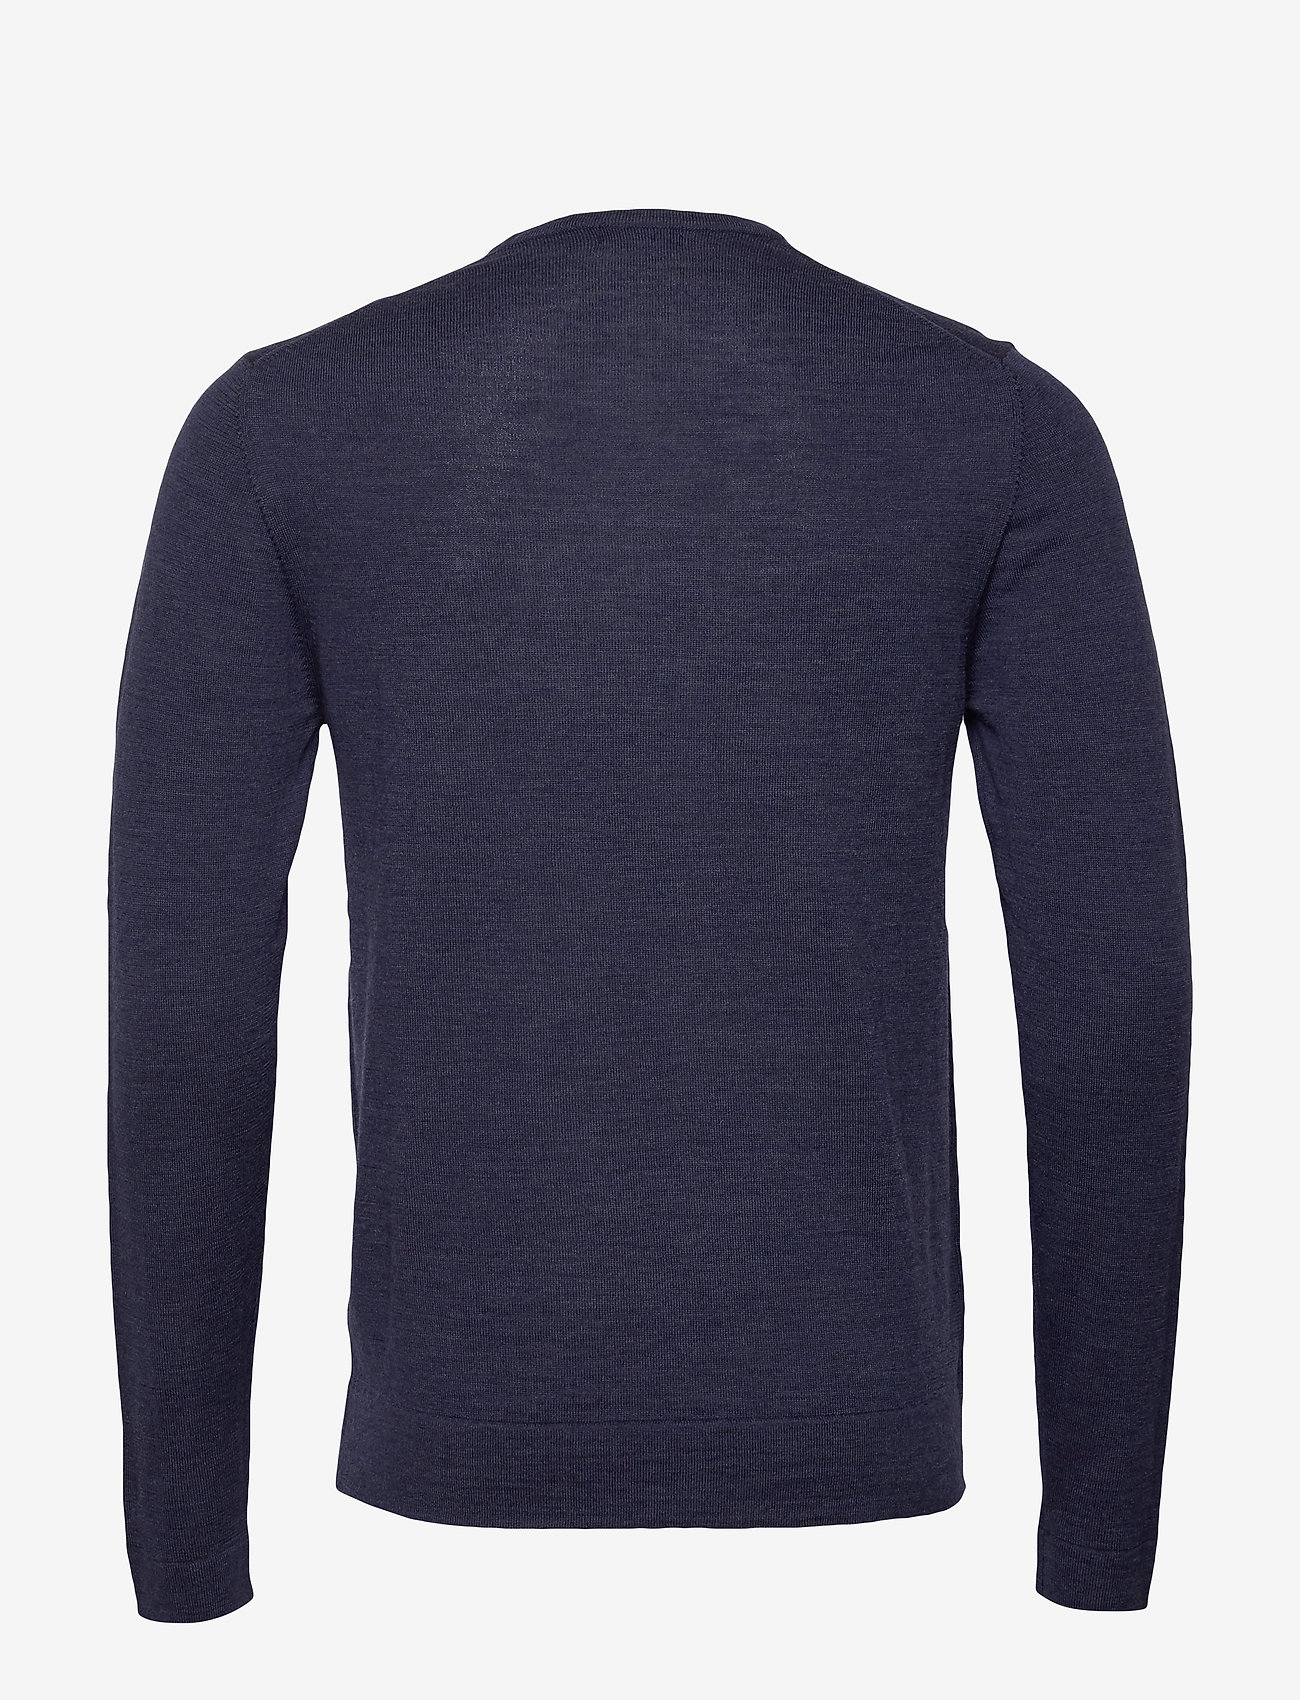 J. Lindeberg - Newman-Perfect Merino - basic strik - jl navy - 1